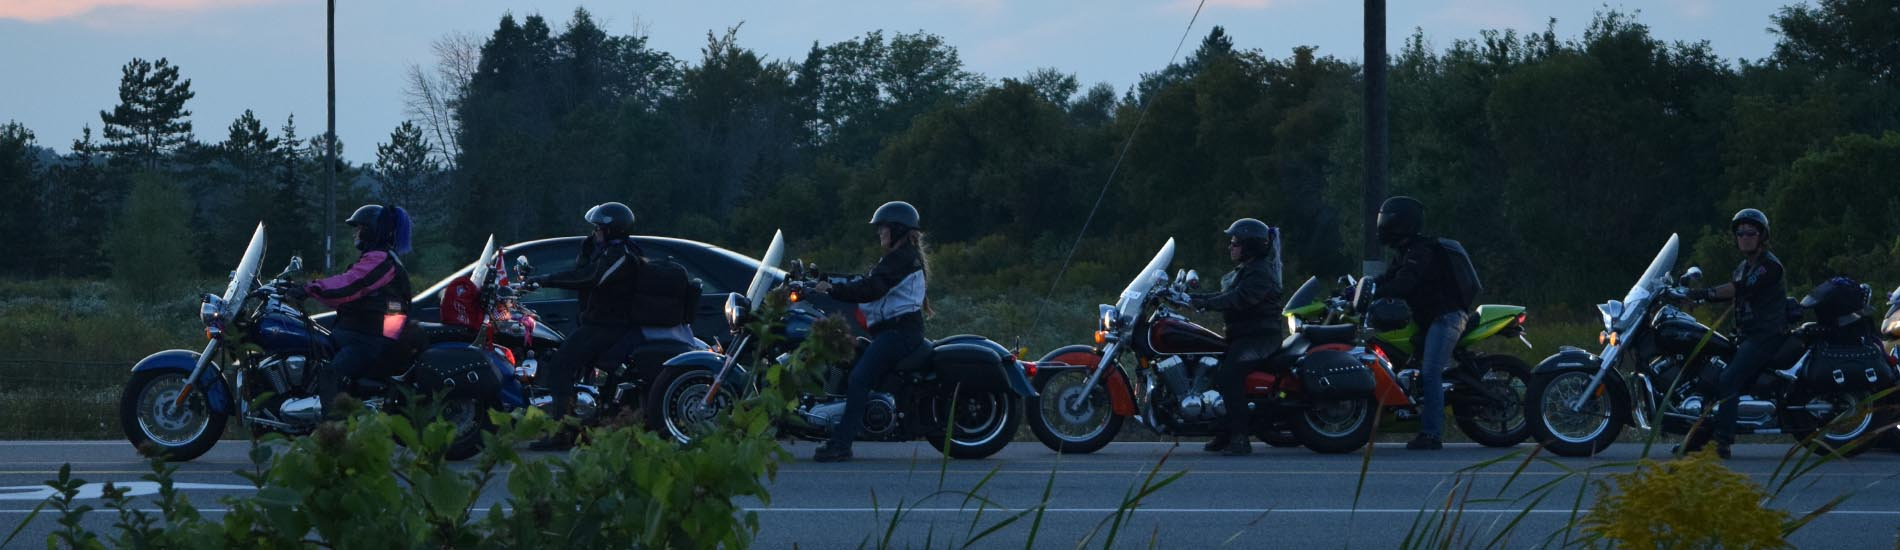 Motorcycle relay unites women riders around the globe